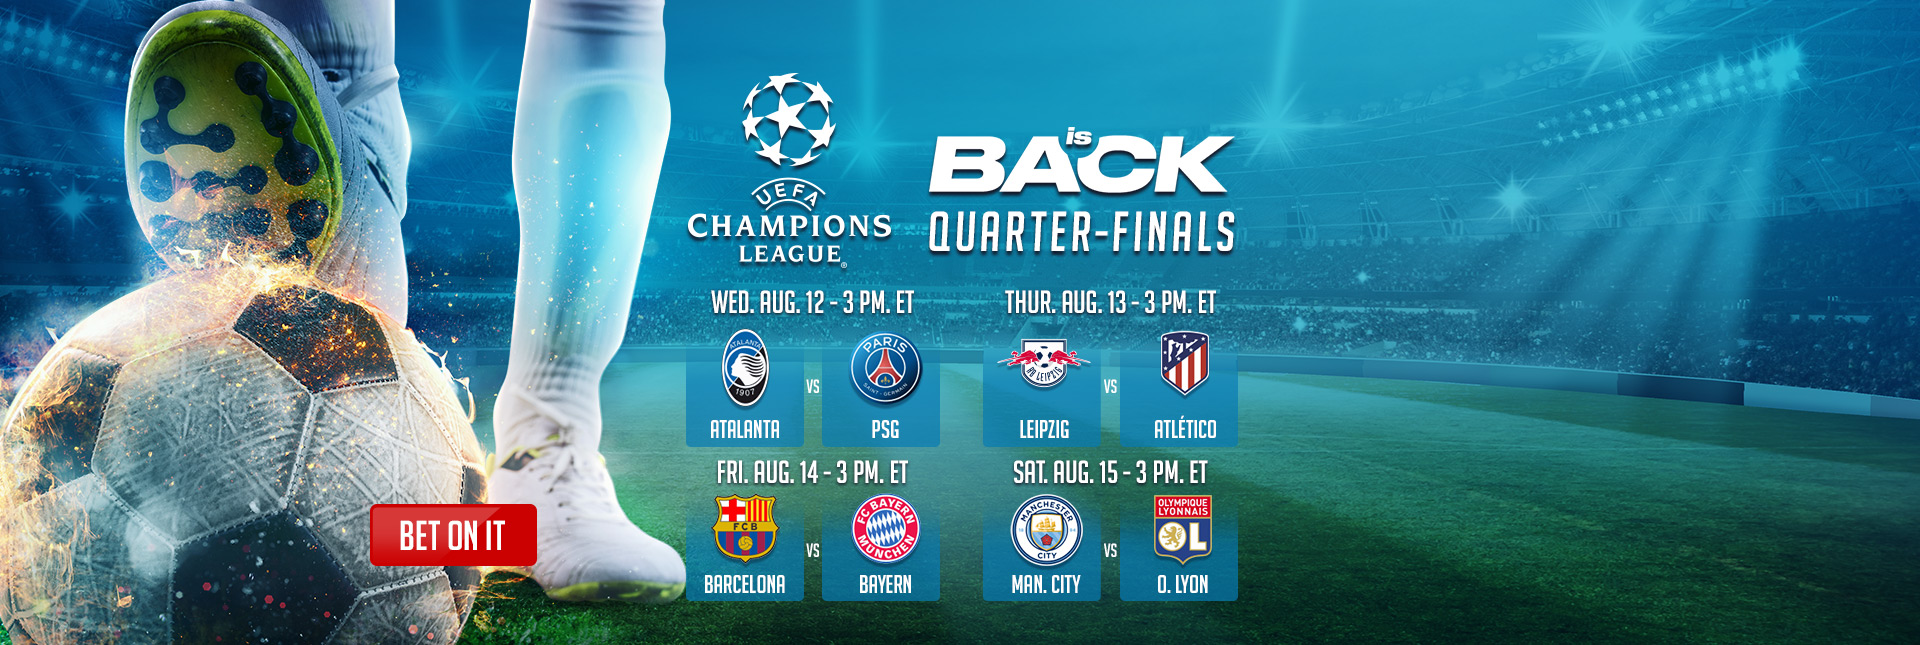 UEFA Champions League Quarter-finals